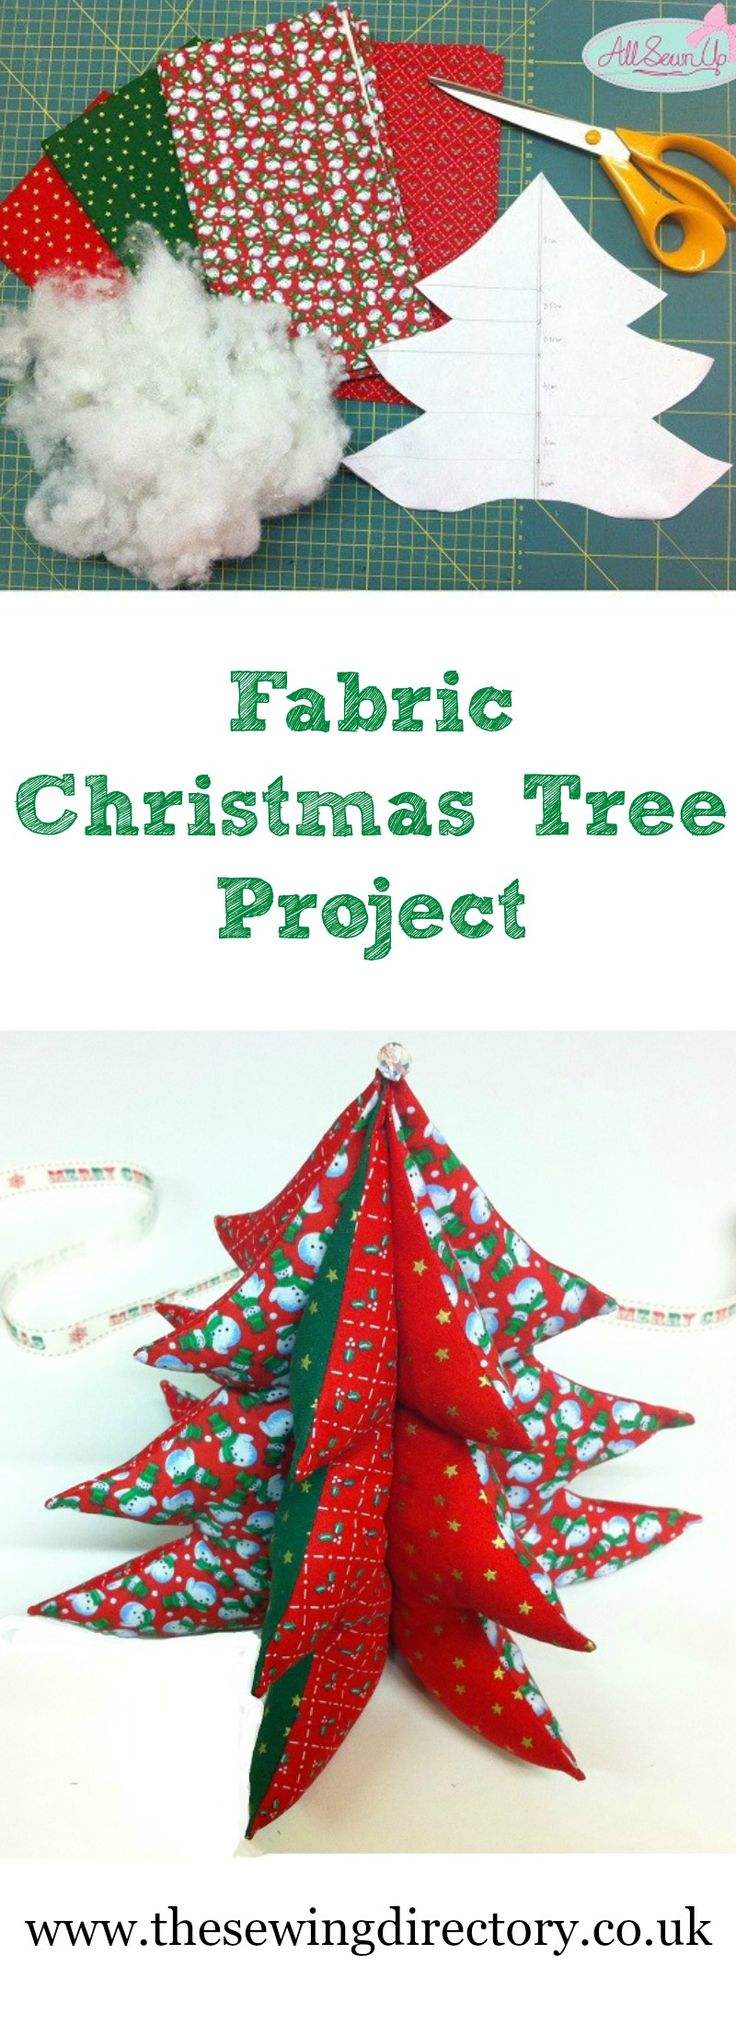 Sew a fabric Christmas tree with this great free tutorial